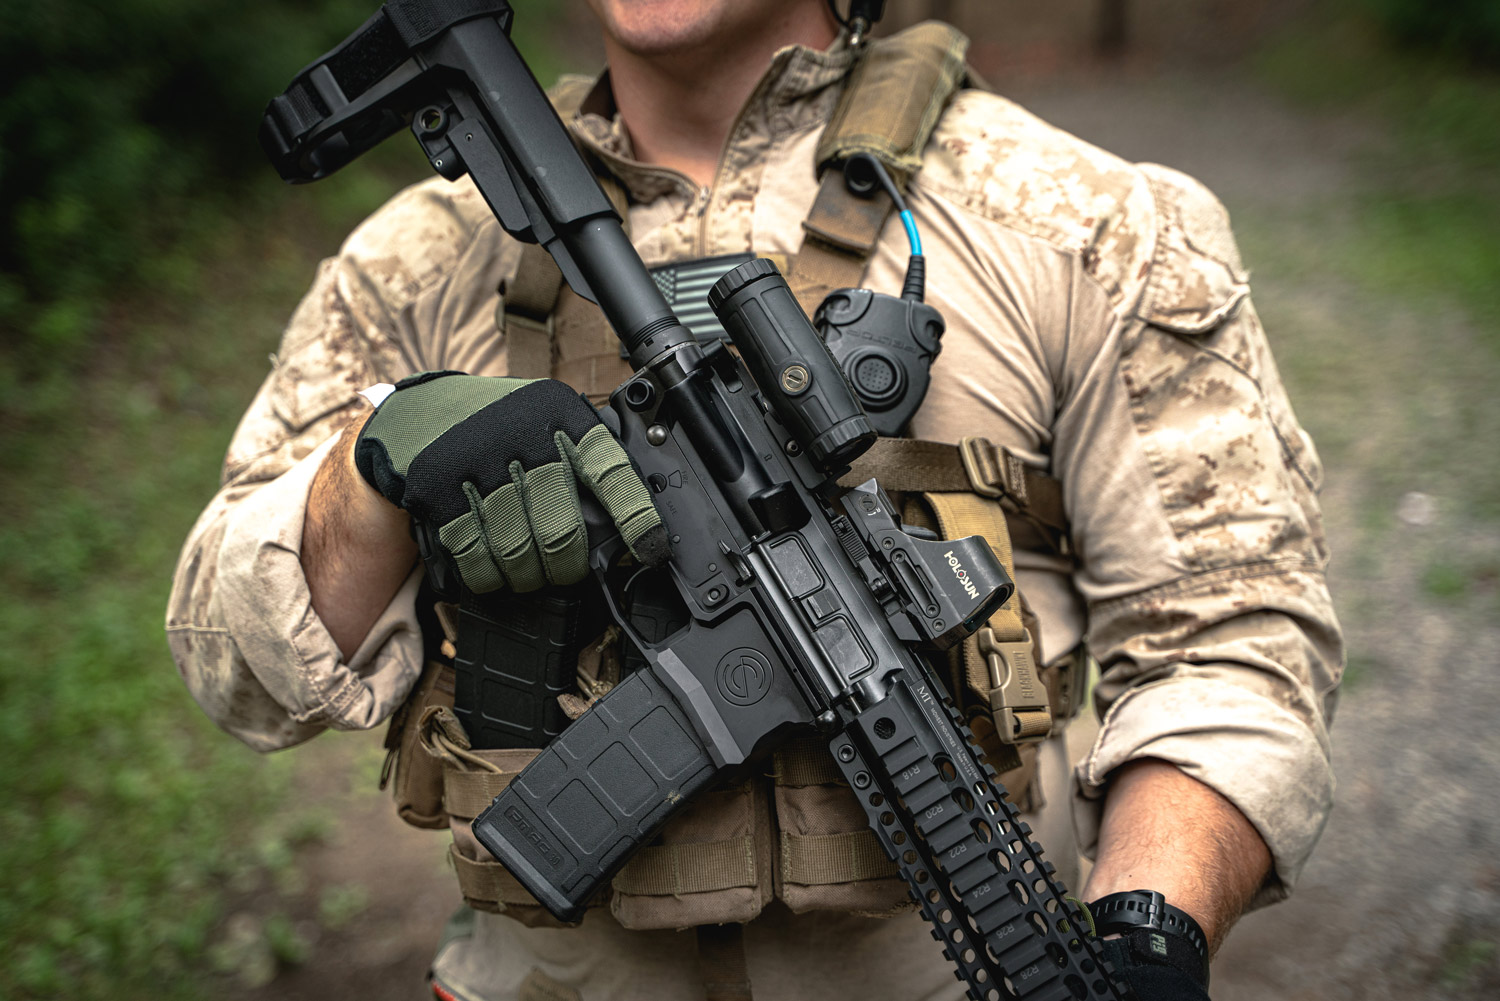 Soldier with AR-15 and ammo